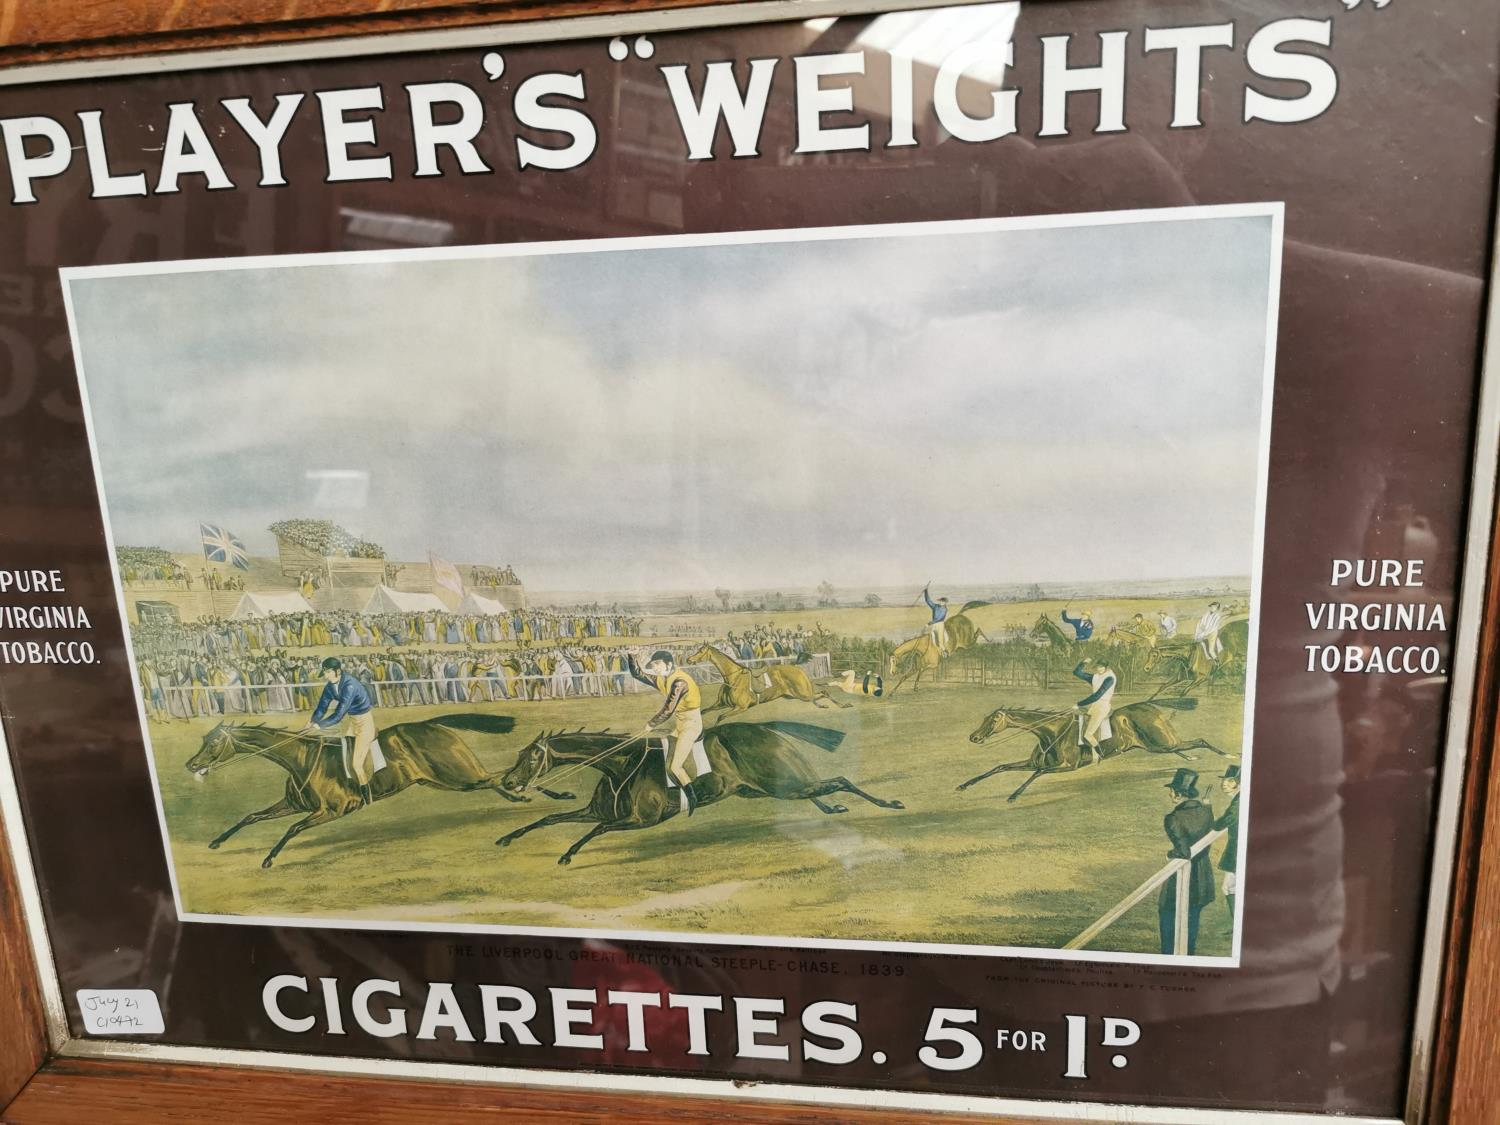 Players Weights cigarettes advertising print. - Image 2 of 3